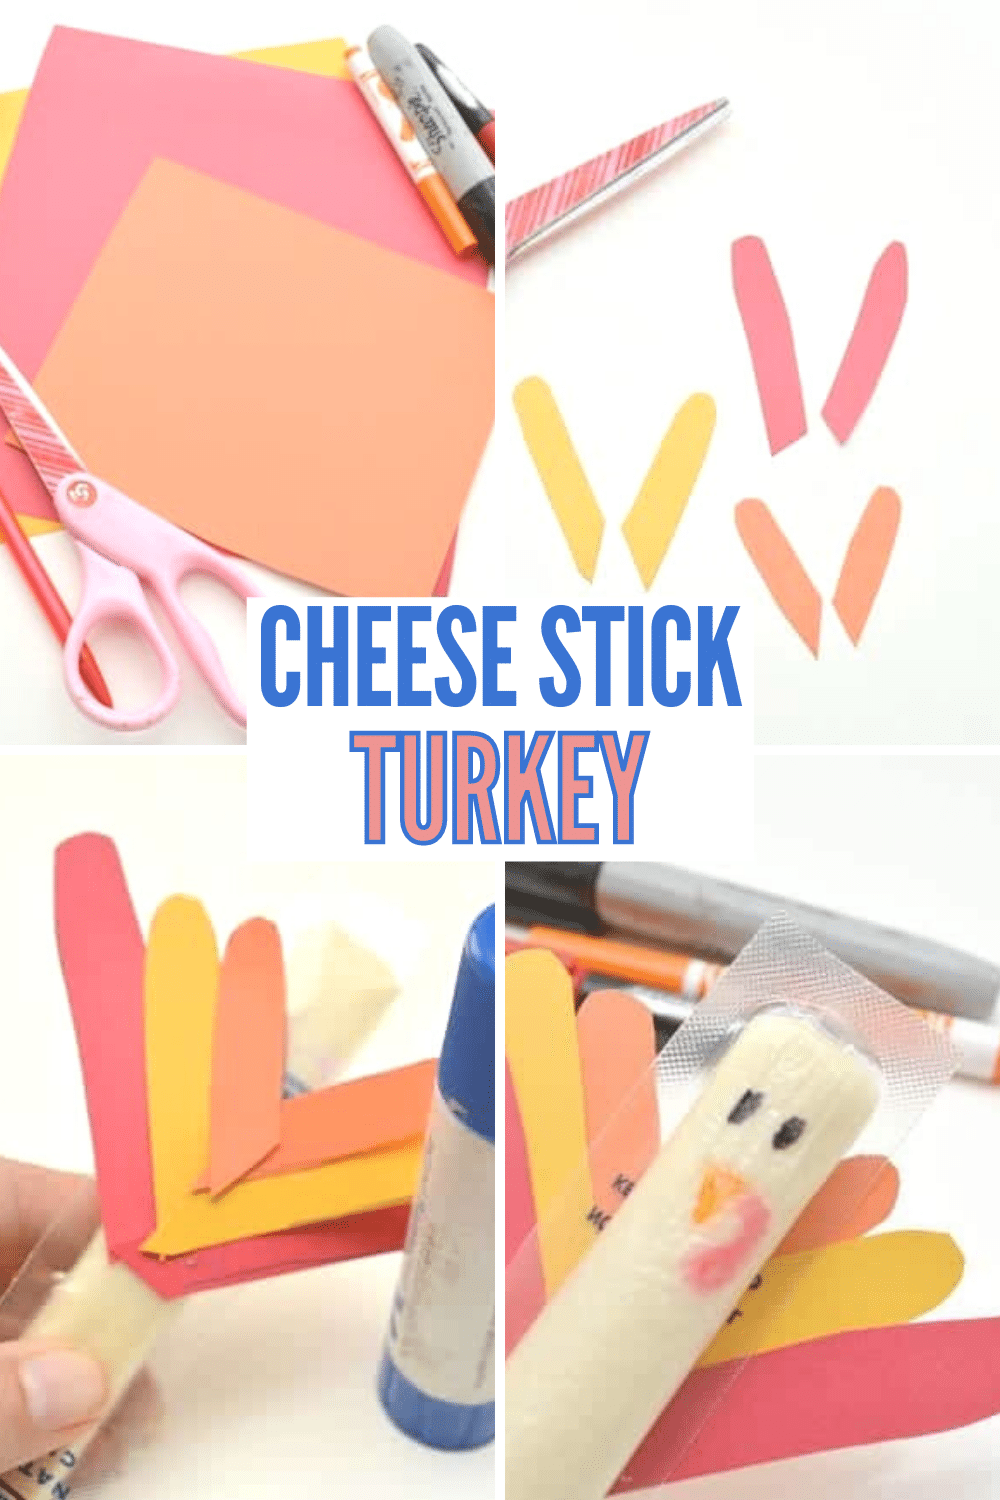 This cheese stick turkey is a fun and healthy snack or treat for kids to enjoy at Thanksgiving and it only takes a couple of minutes to make! #thanksgiving #healthysnack #snackcraft via @wondermomwannab